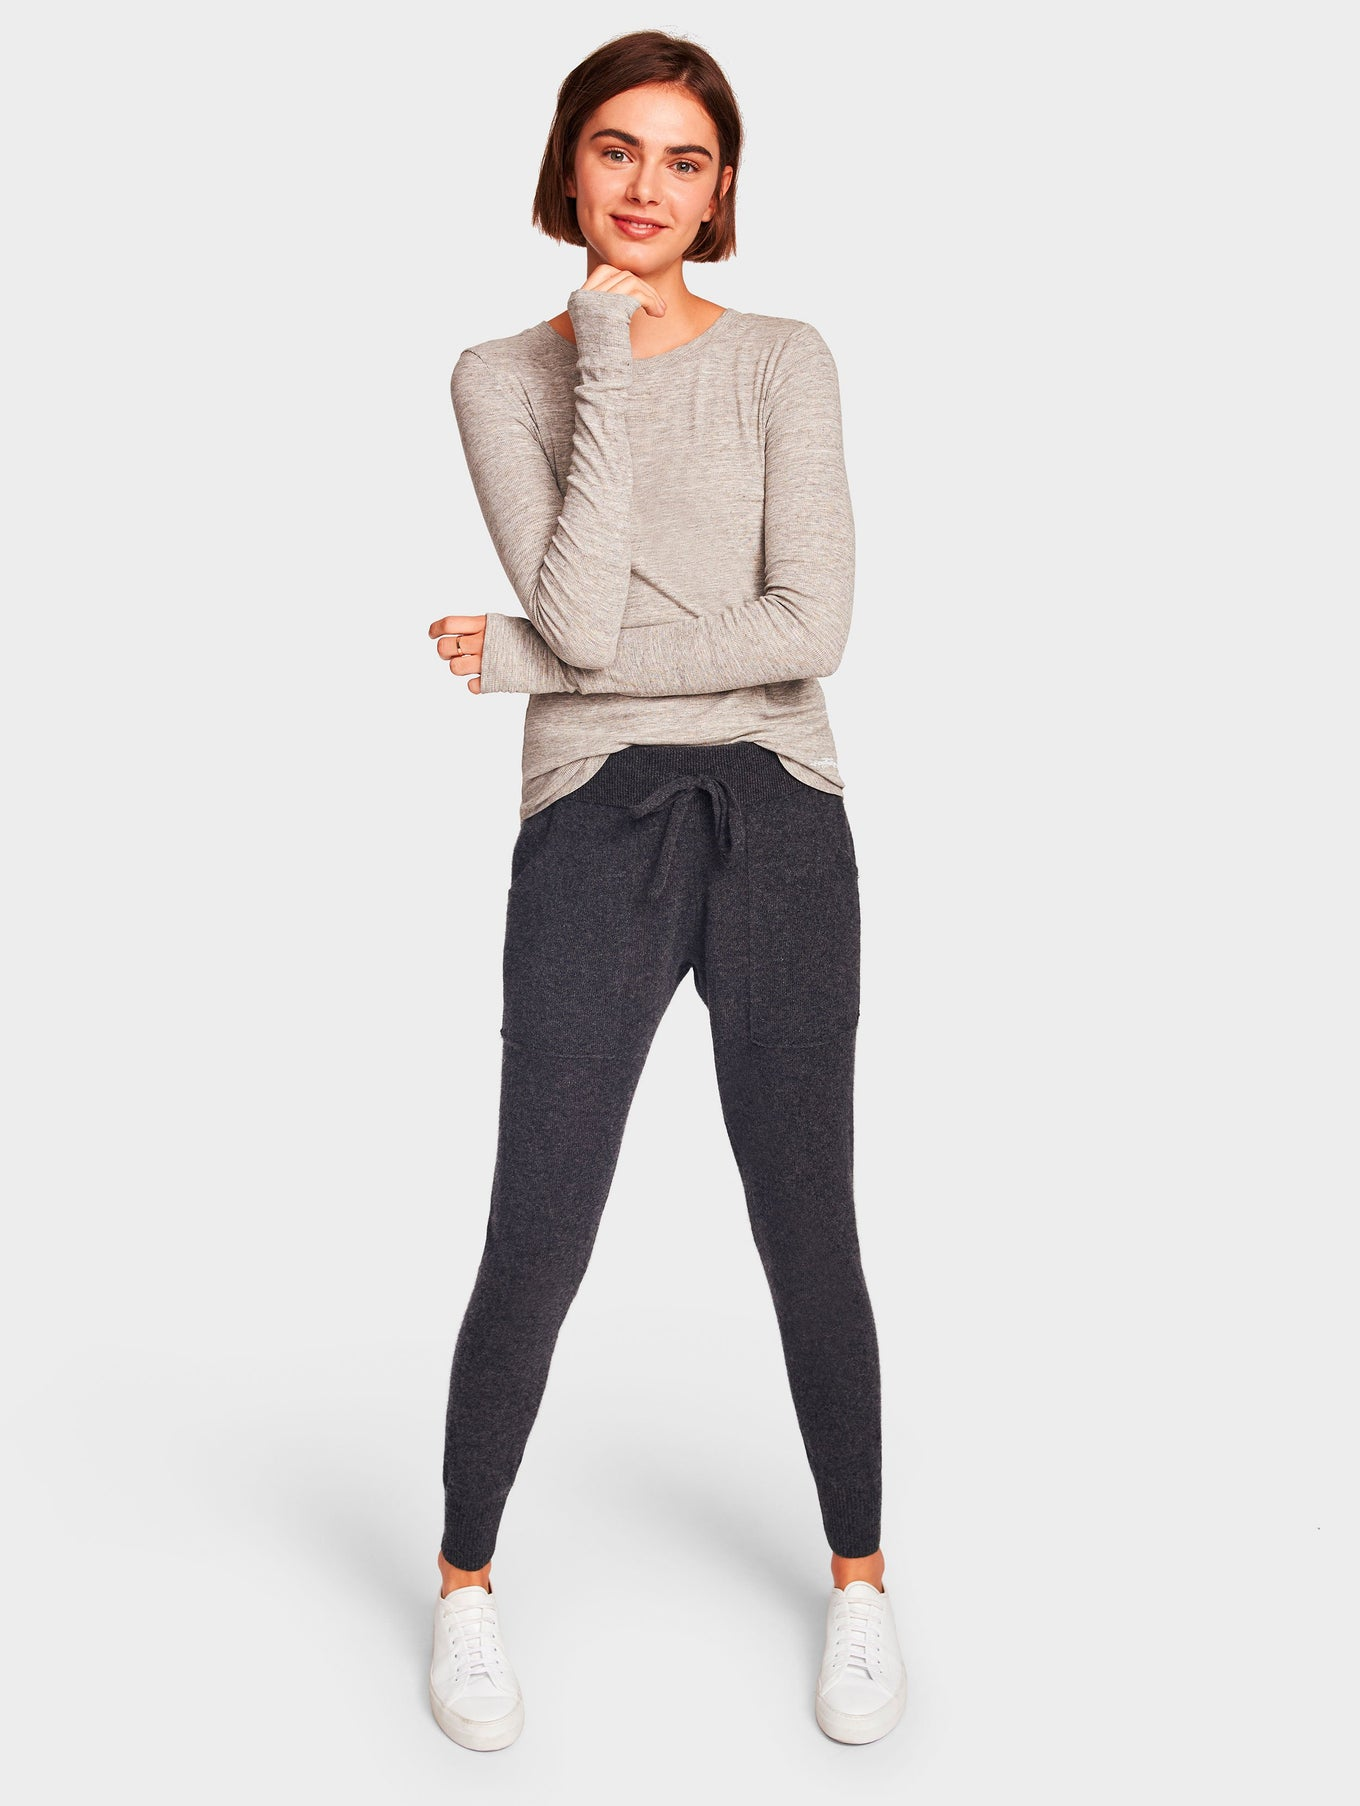 Cashmere Lounge Pant - Charcoal Heather - Image 1